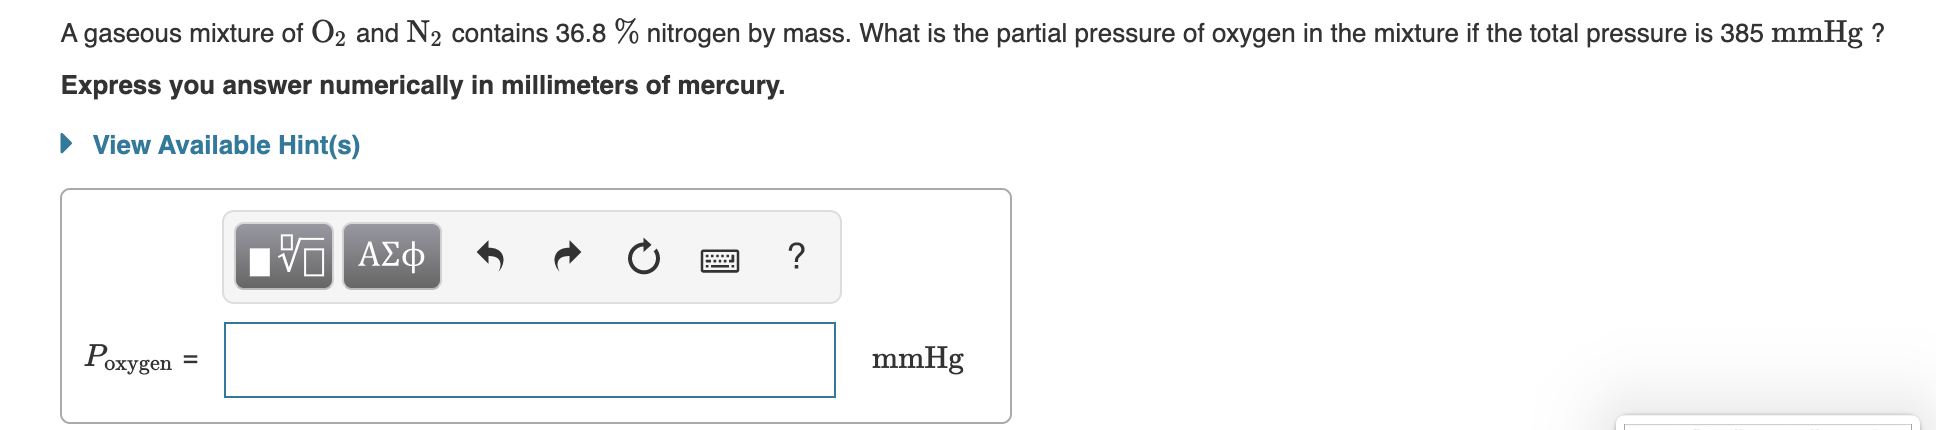 A gaseous mixture of O2 and N2 contains 36.8 % nitrogen by mass. What is the partial pressure of oxygen in the mixture if the total pressure is 385 mmHg? Express you answer numerically in millimeters of mercury. View Available Hint(s) ΑΣφ ? Poxygen mmHg II